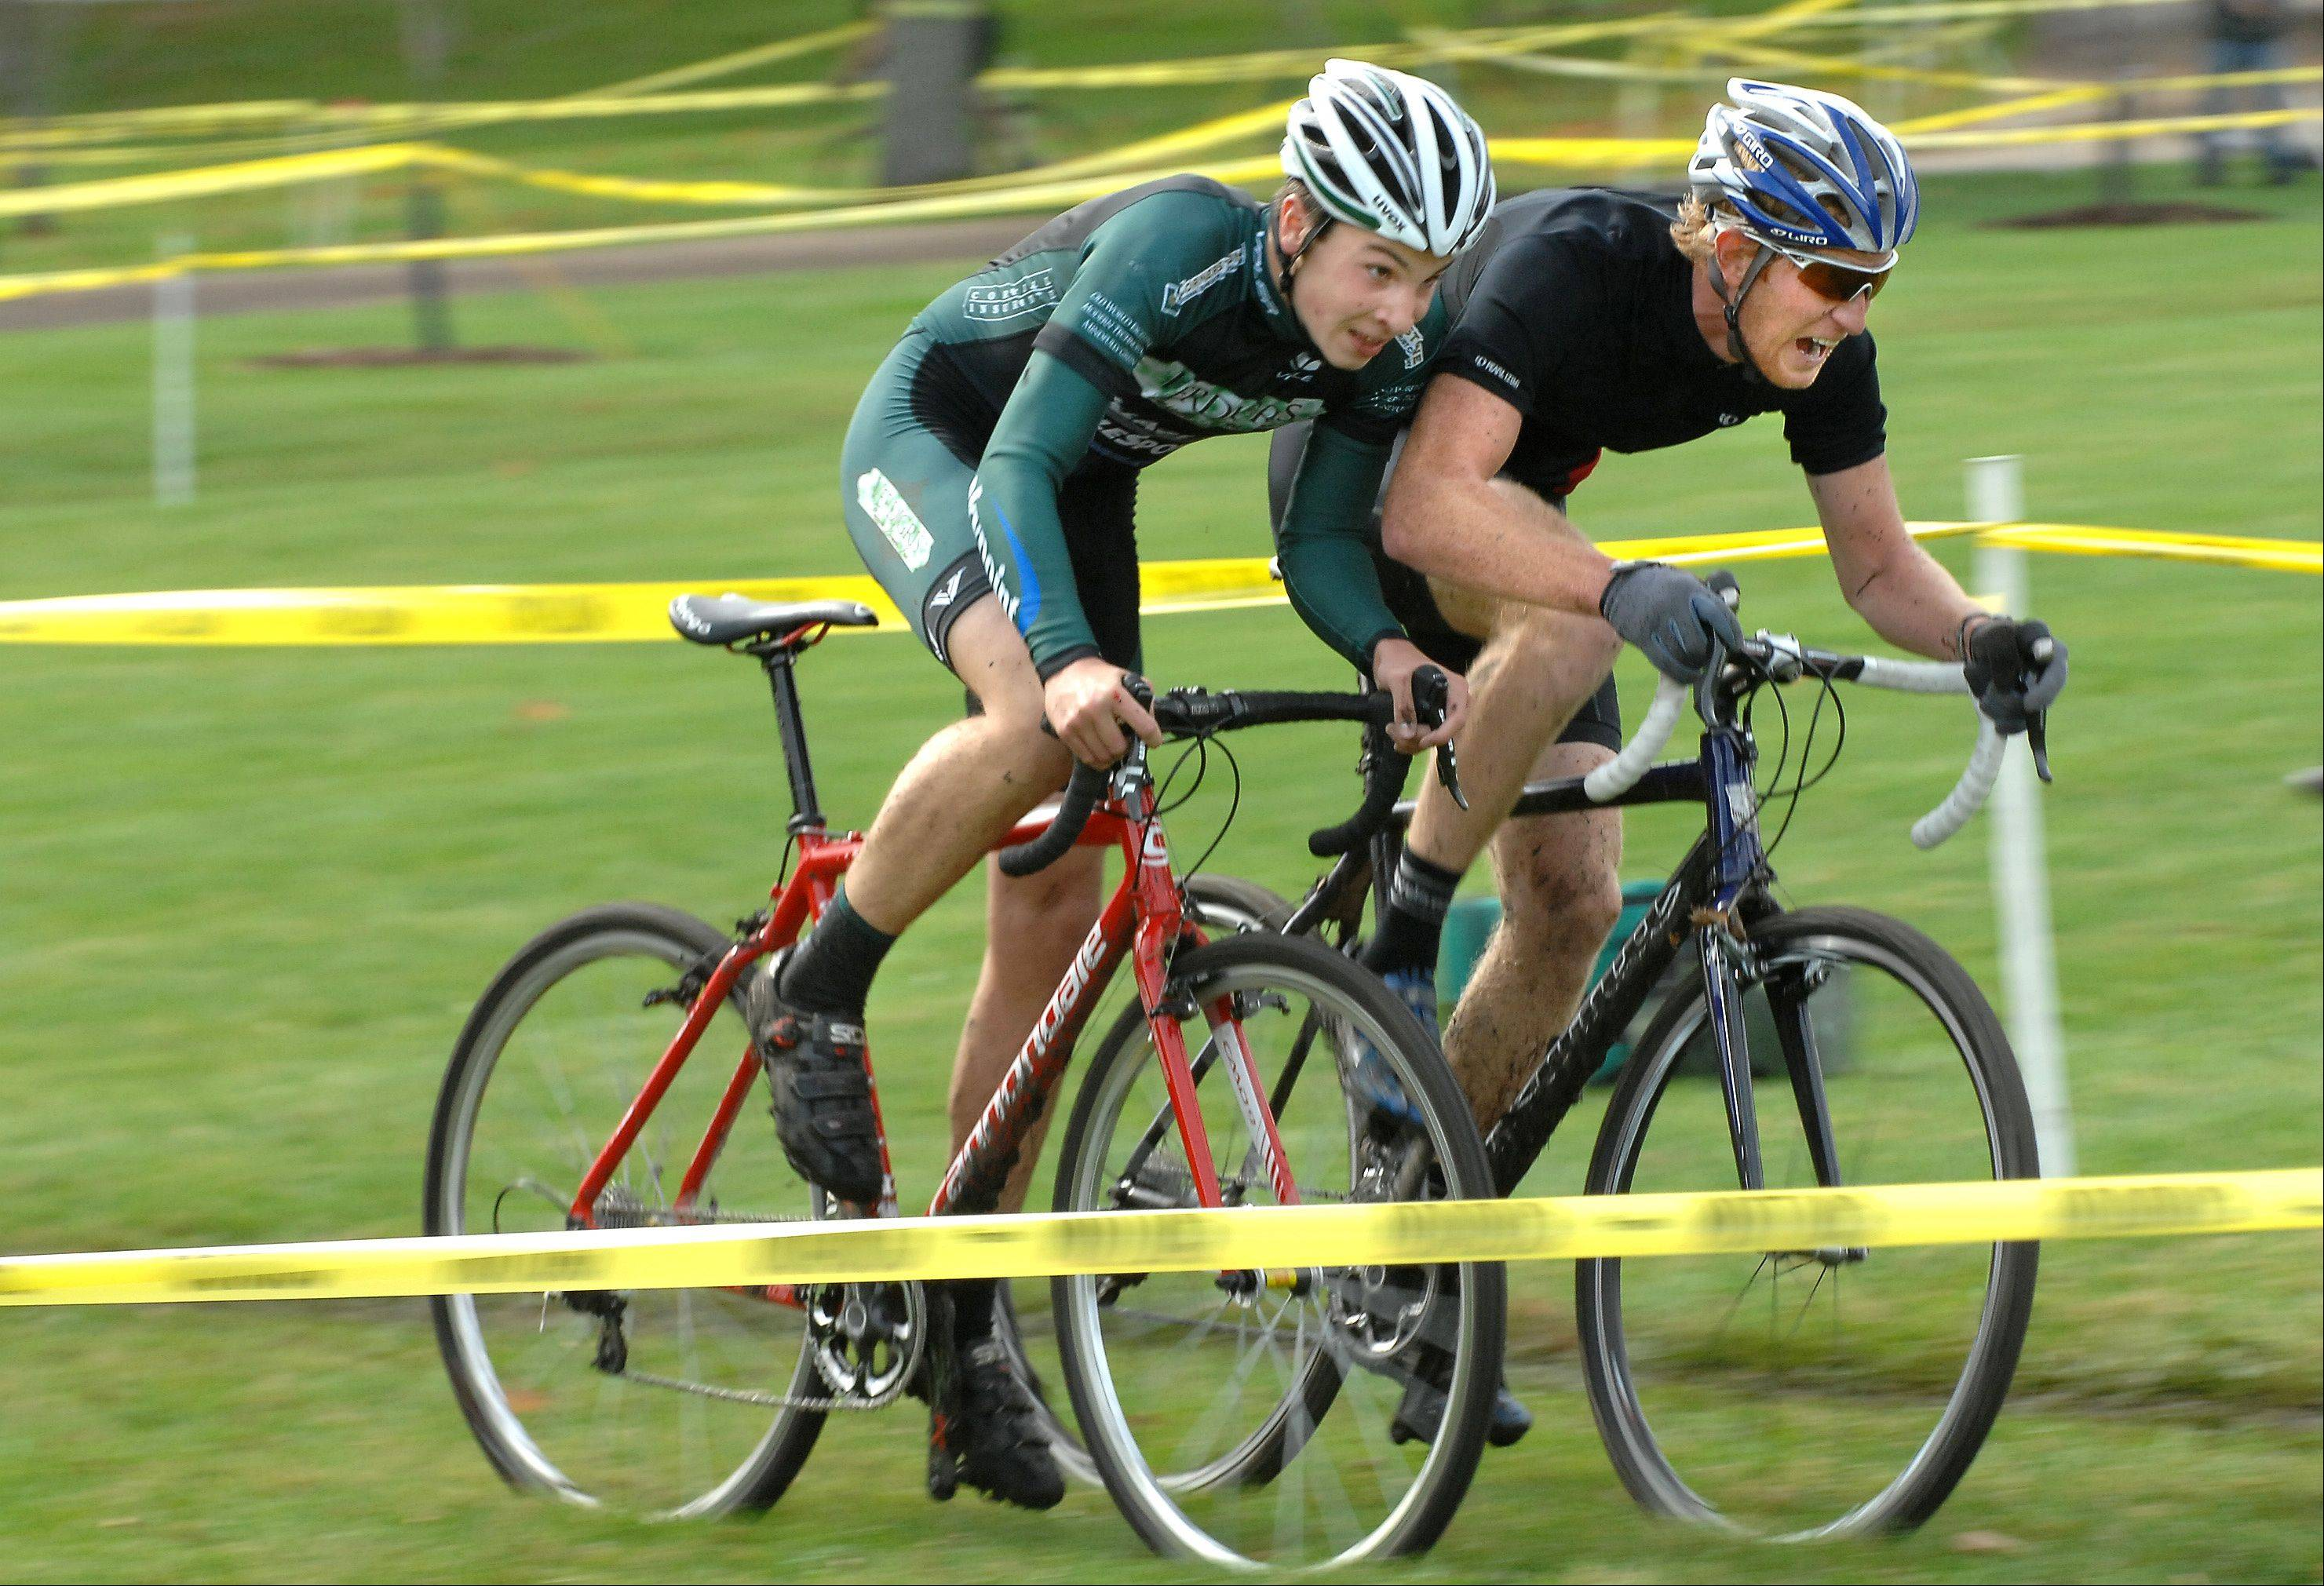 Battling for first place, David Lombardo, left, of Crystal Lake, and Mark Bowers, of Evanston, gasp for air and peddle through the soft grass going into the last turn at the 2011 Chicago Cyclocross Cup men's Category 3 race in Carpenter Park.